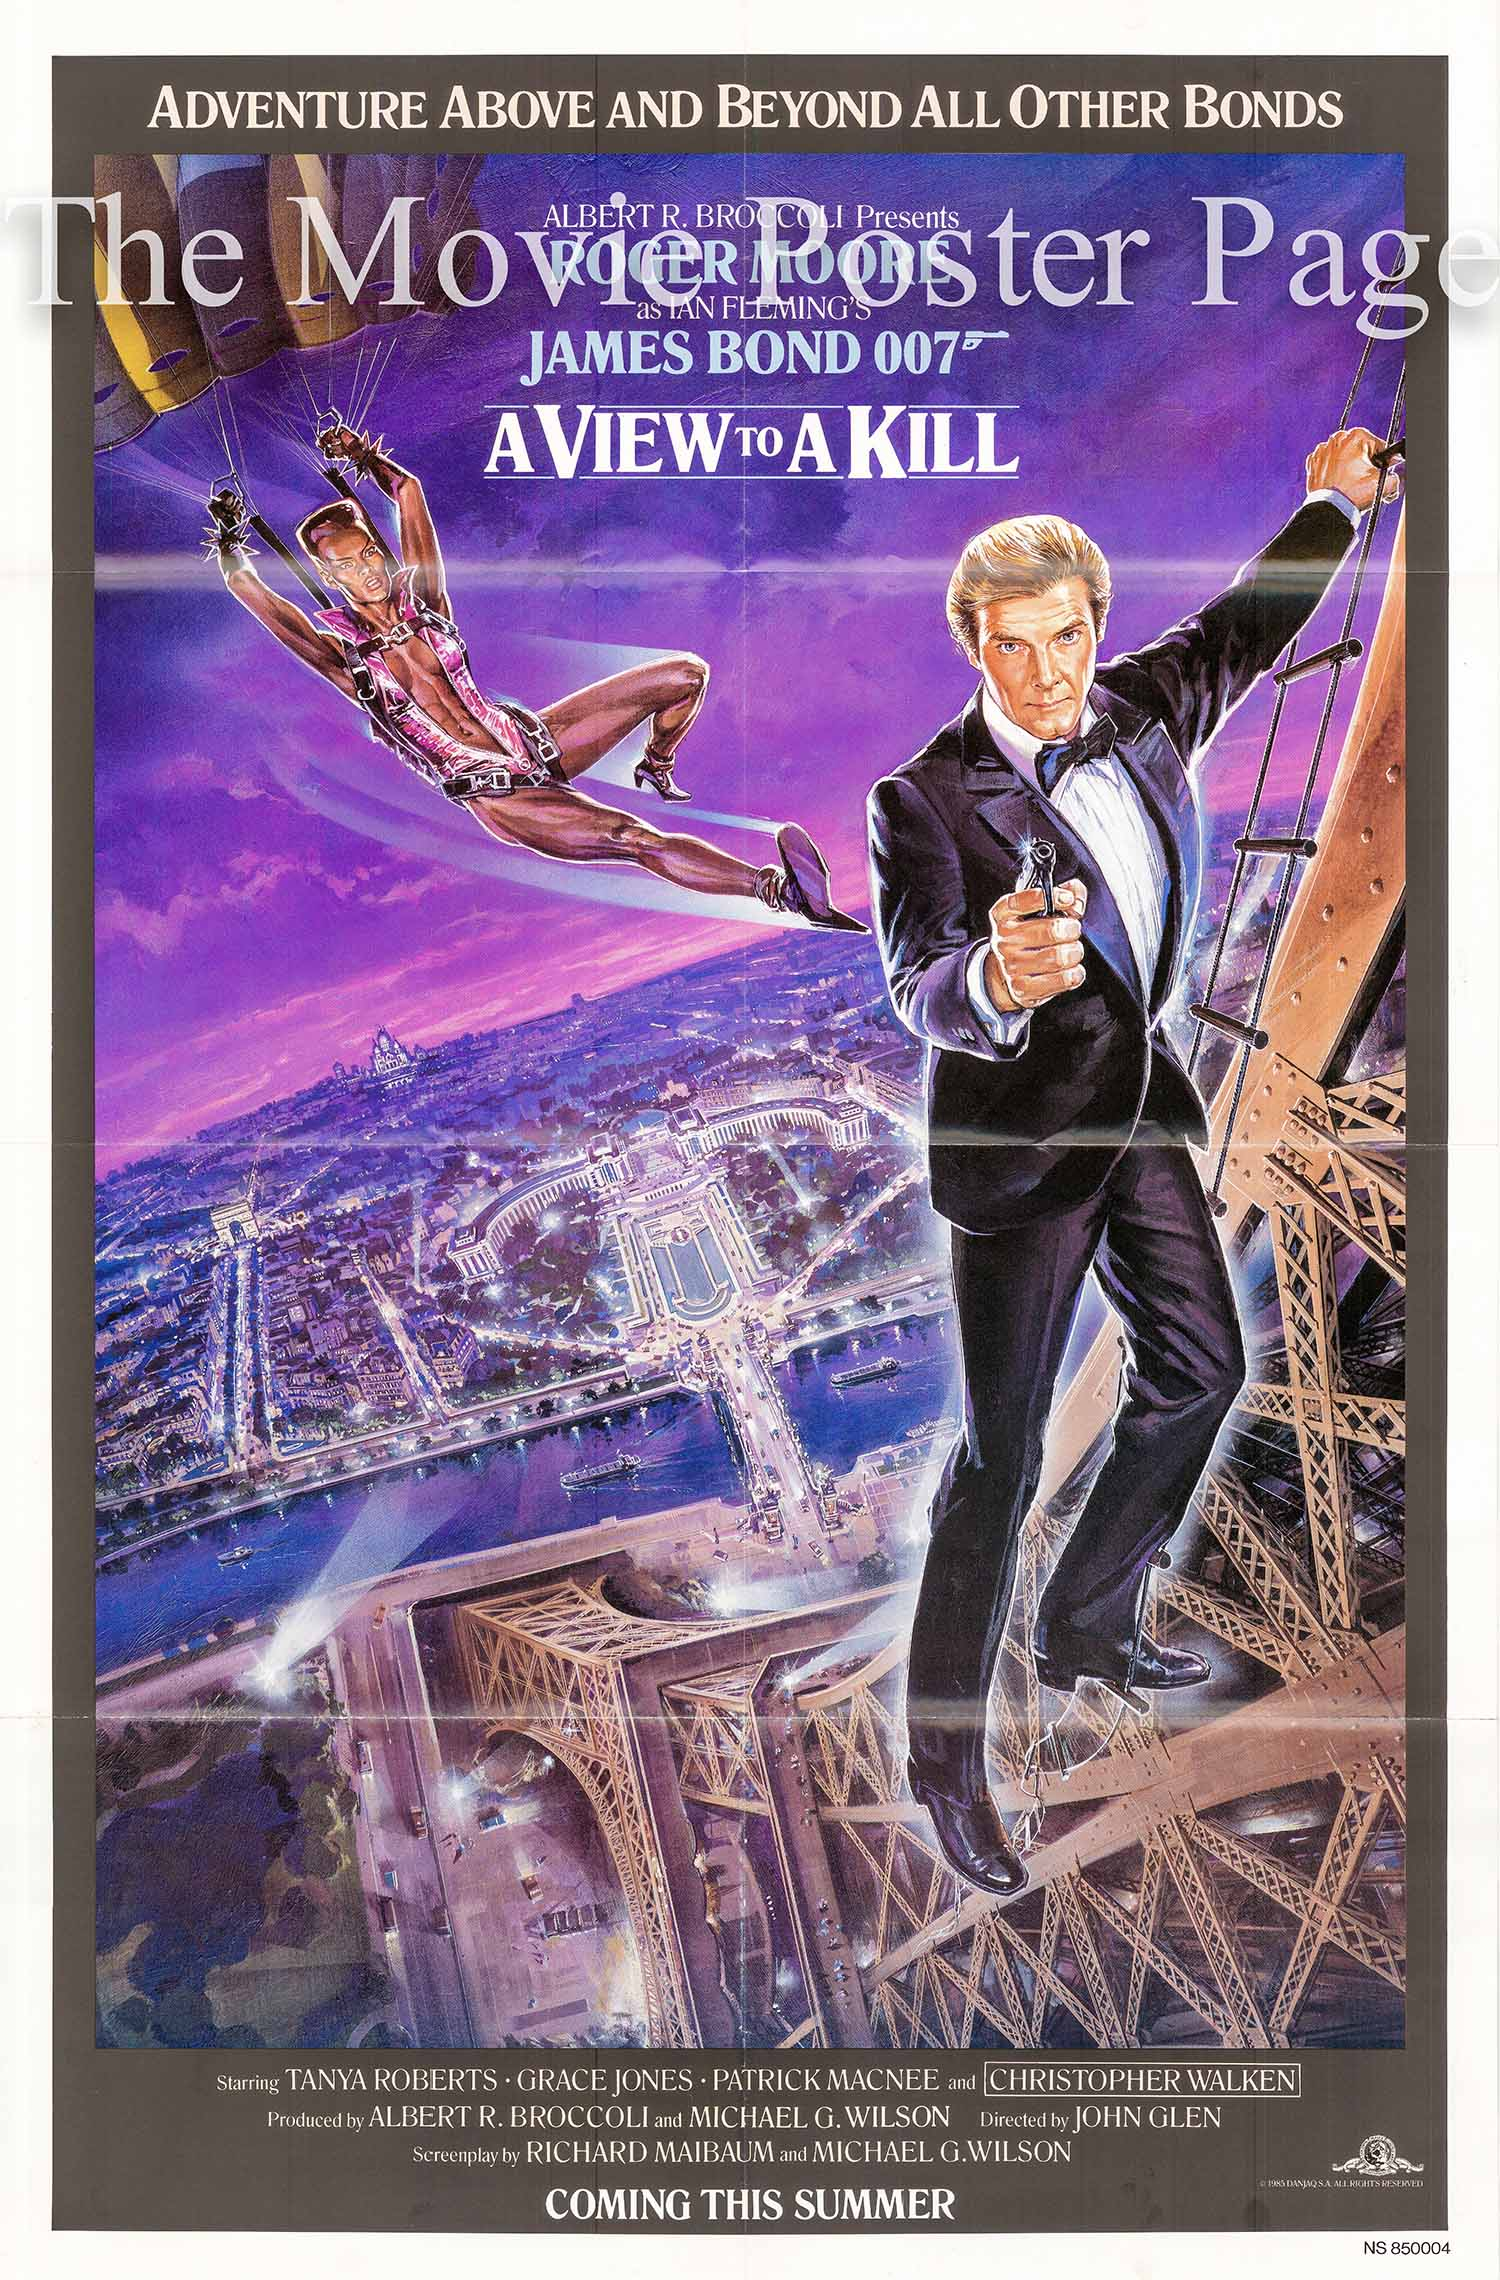 Pictured is a US Eiffel Tower advance one-sheet for the 1985 John Glen film A View to a Kill starring Roger Moo